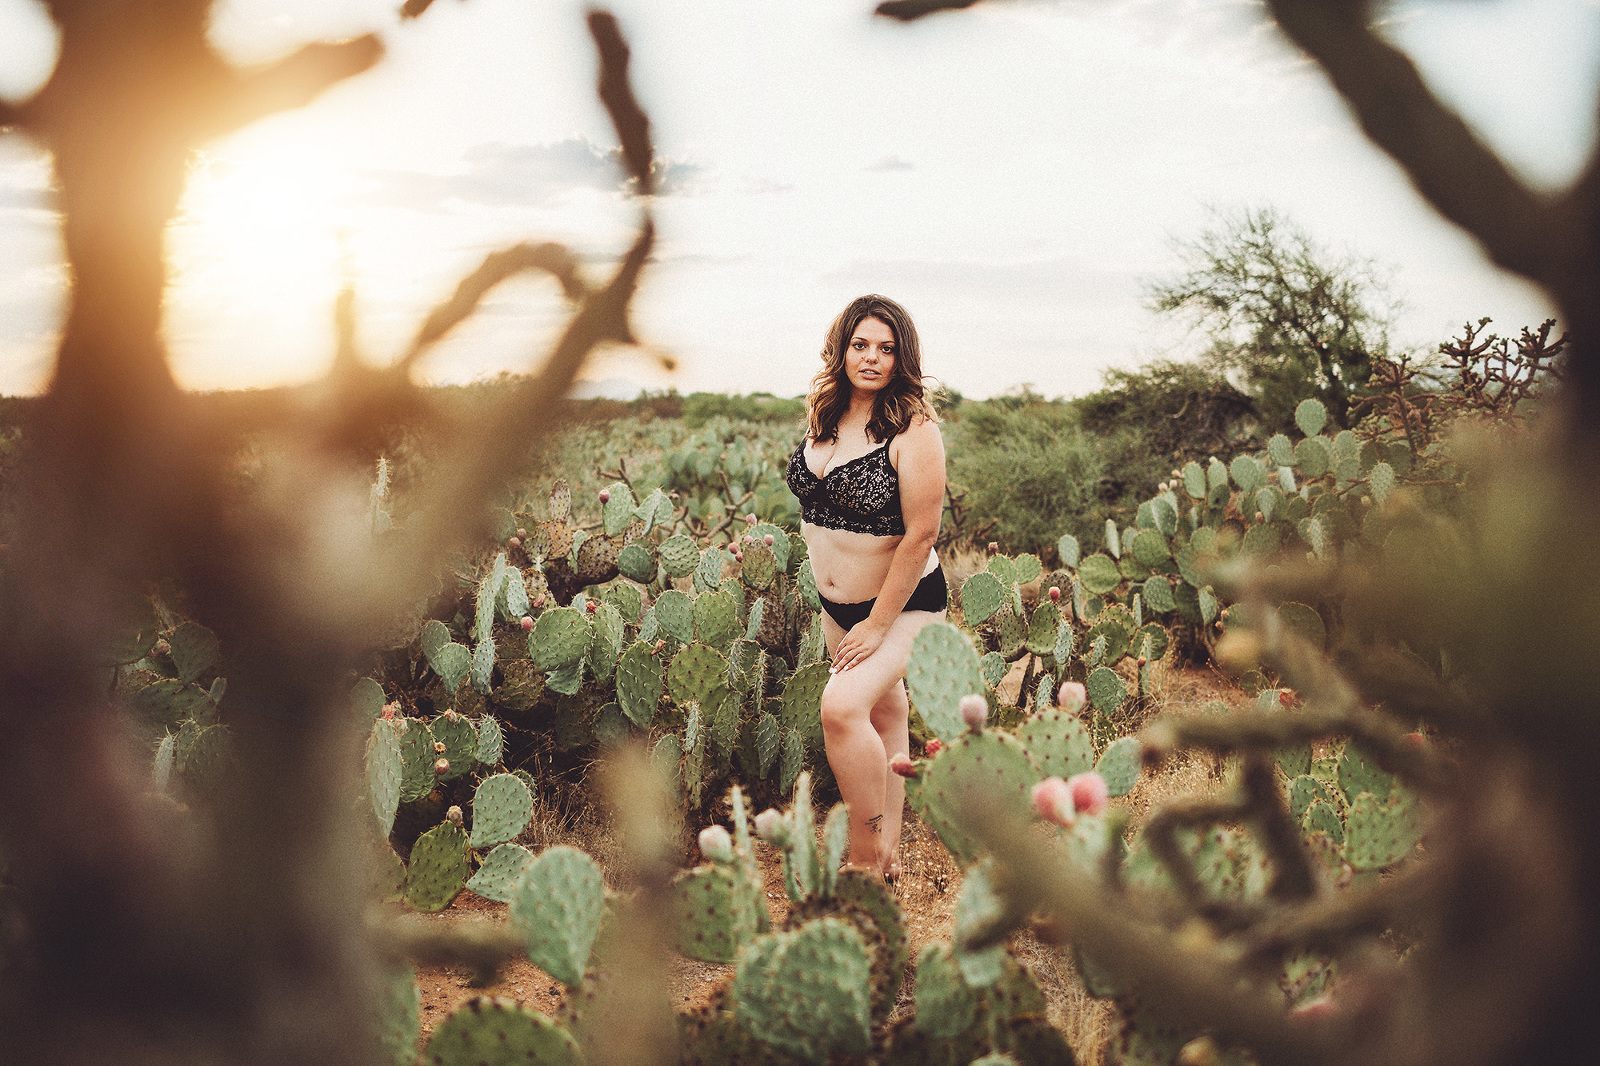 A young woman poses amongst the desert cactus in black lingerie during her desert boudoir session